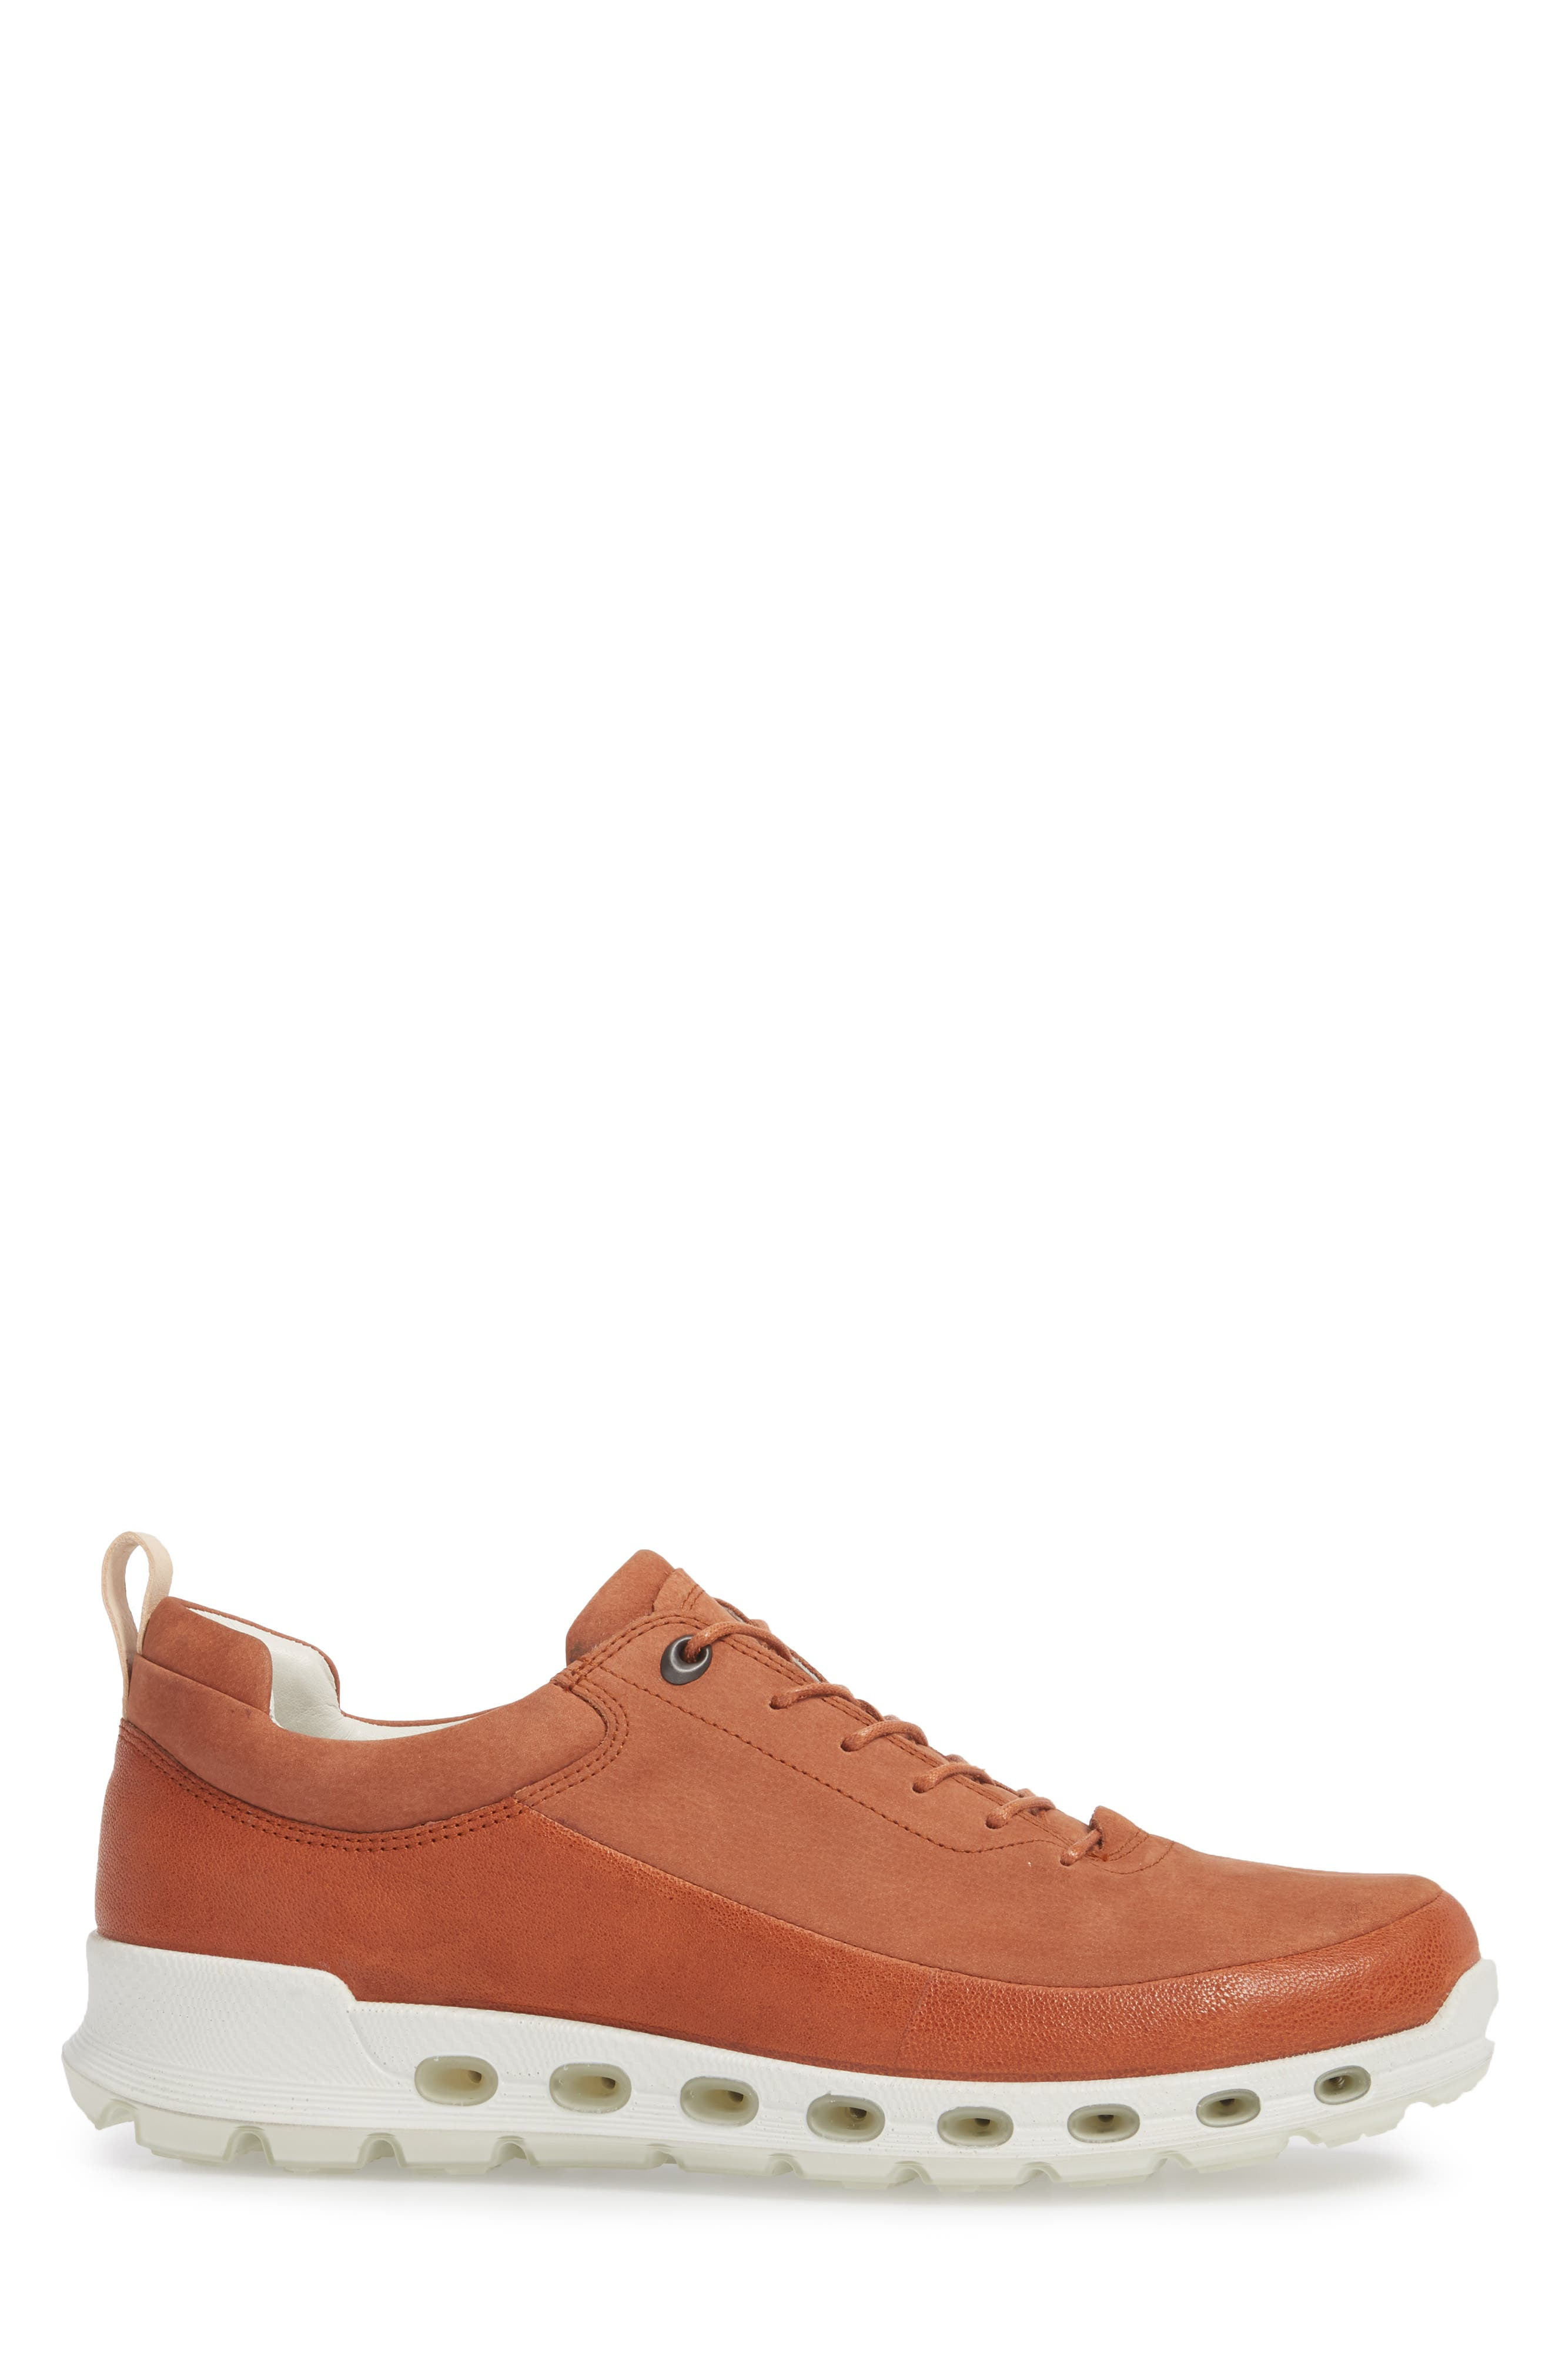 Cool 2.0 Gore-Tex<sup>®</sup> Sneaker,                             Alternate thumbnail 3, color,                             Brandy Leather